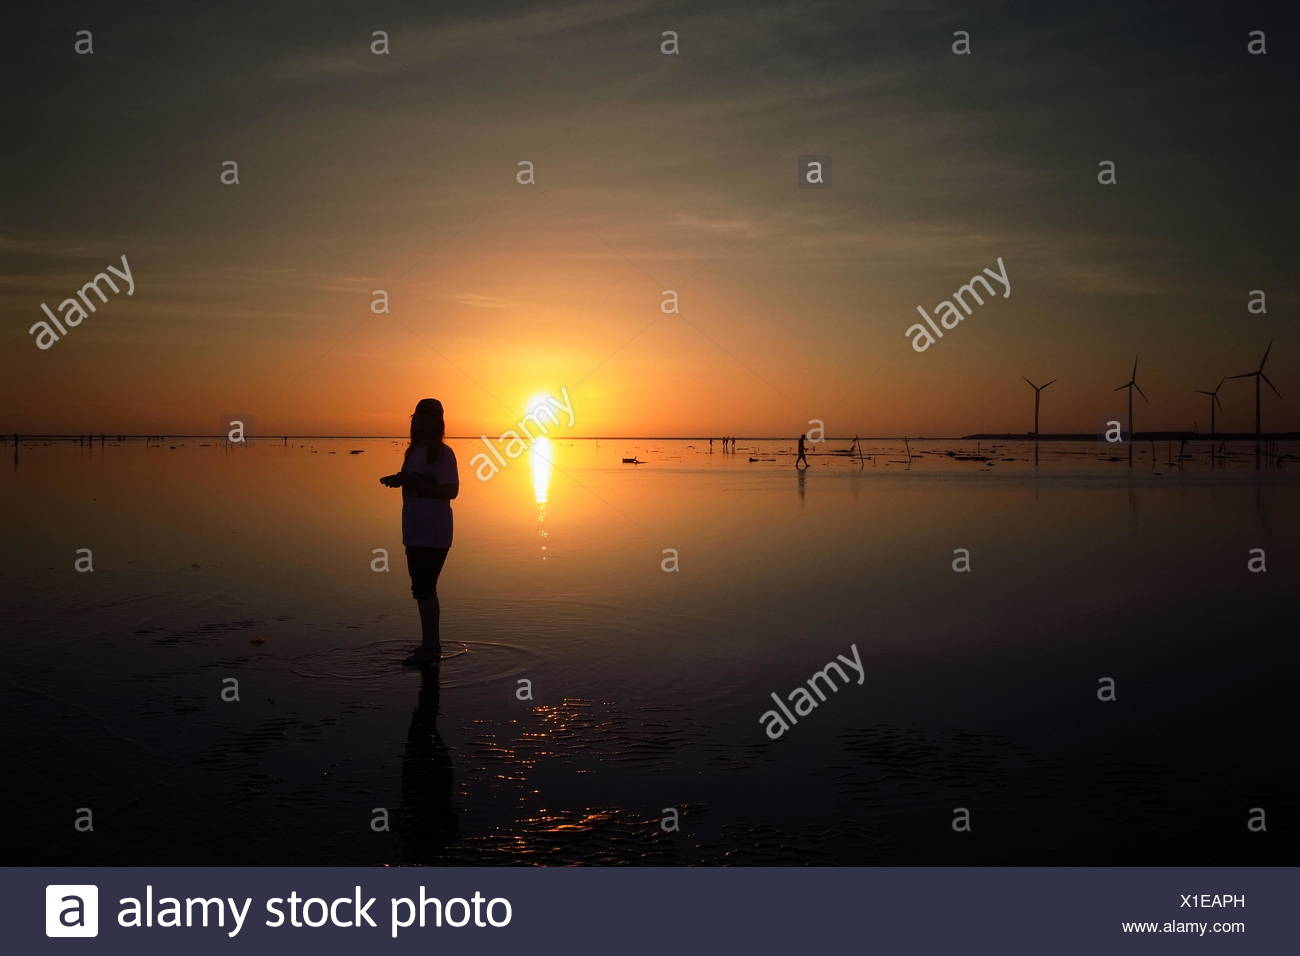 Silhouette Woman Standing On Beach At Sunset - Stock Image